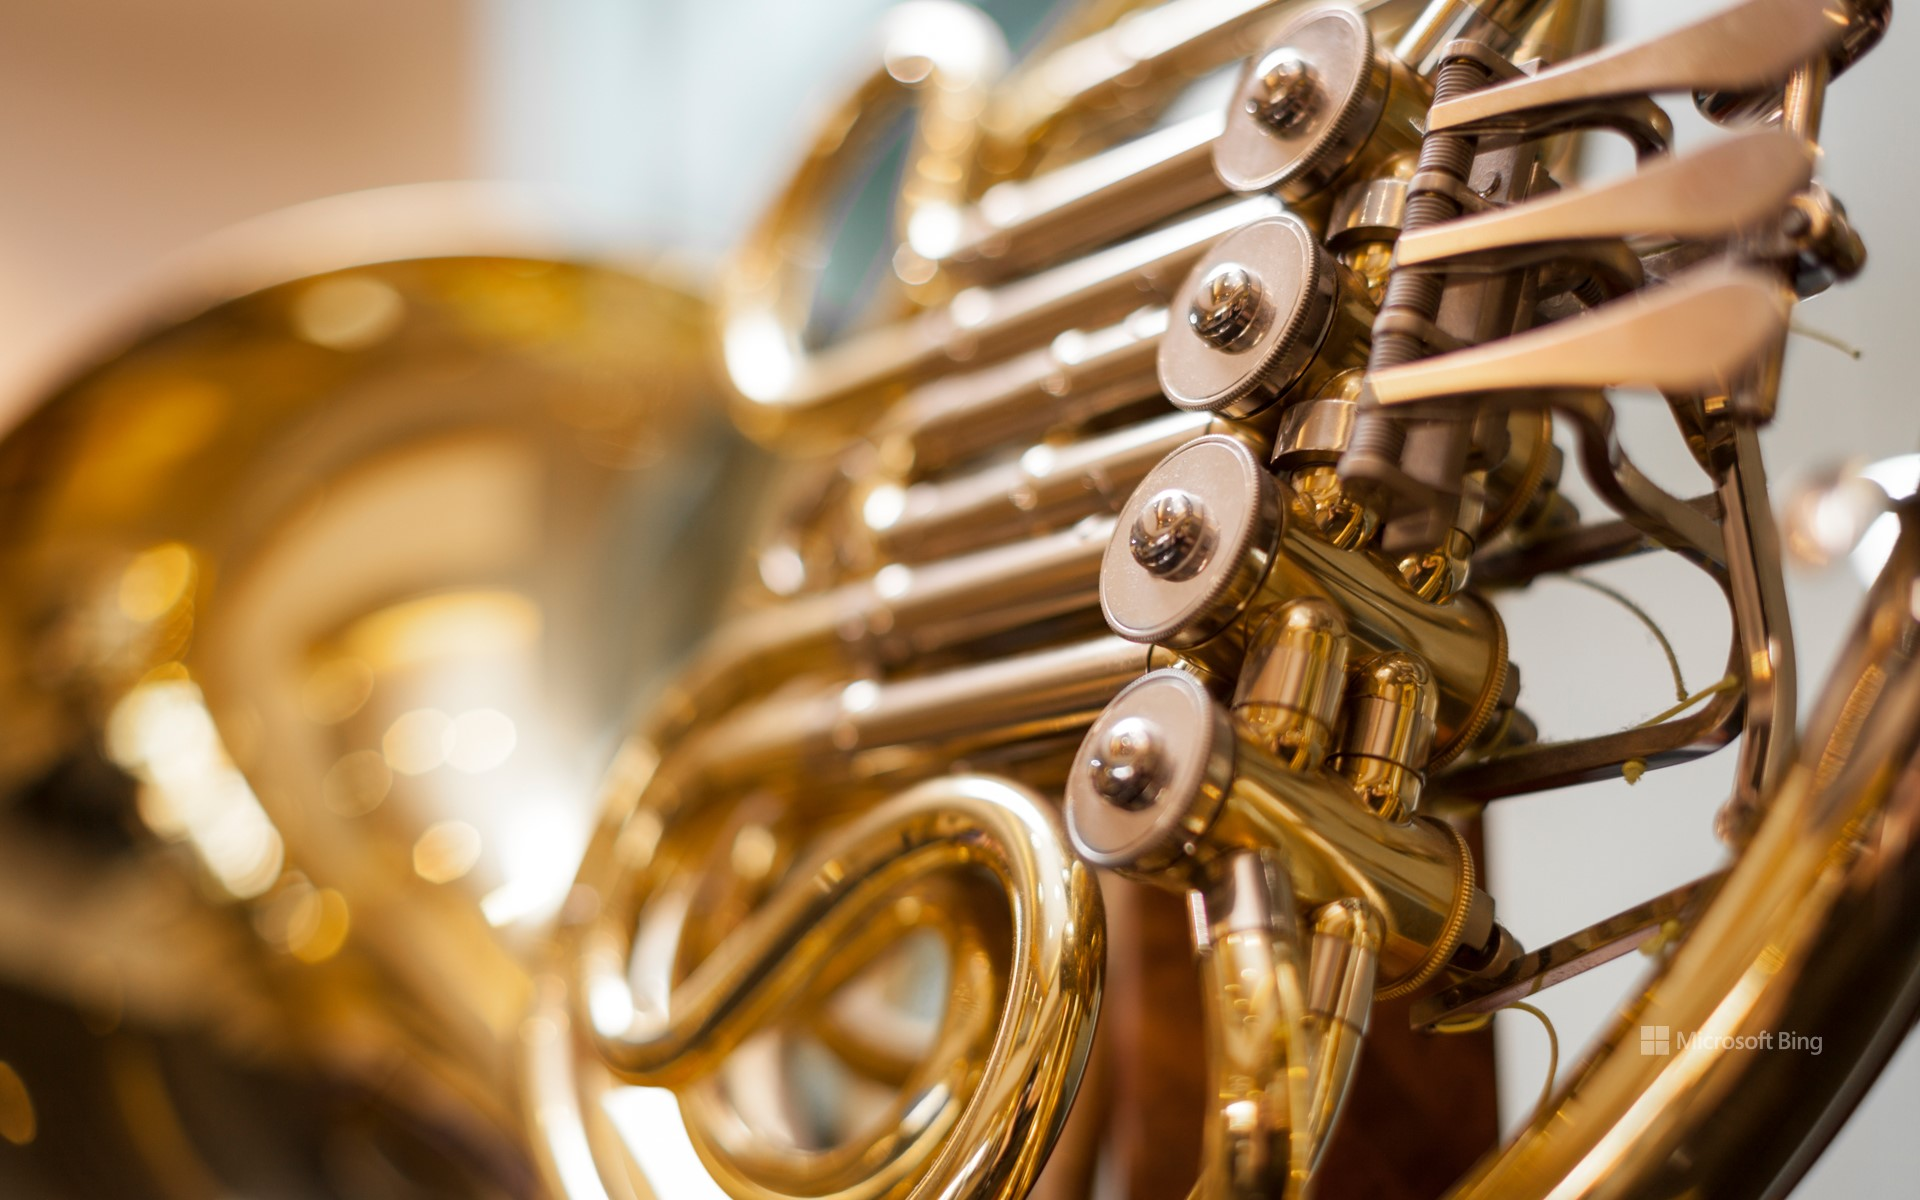 Close-up of a French horn